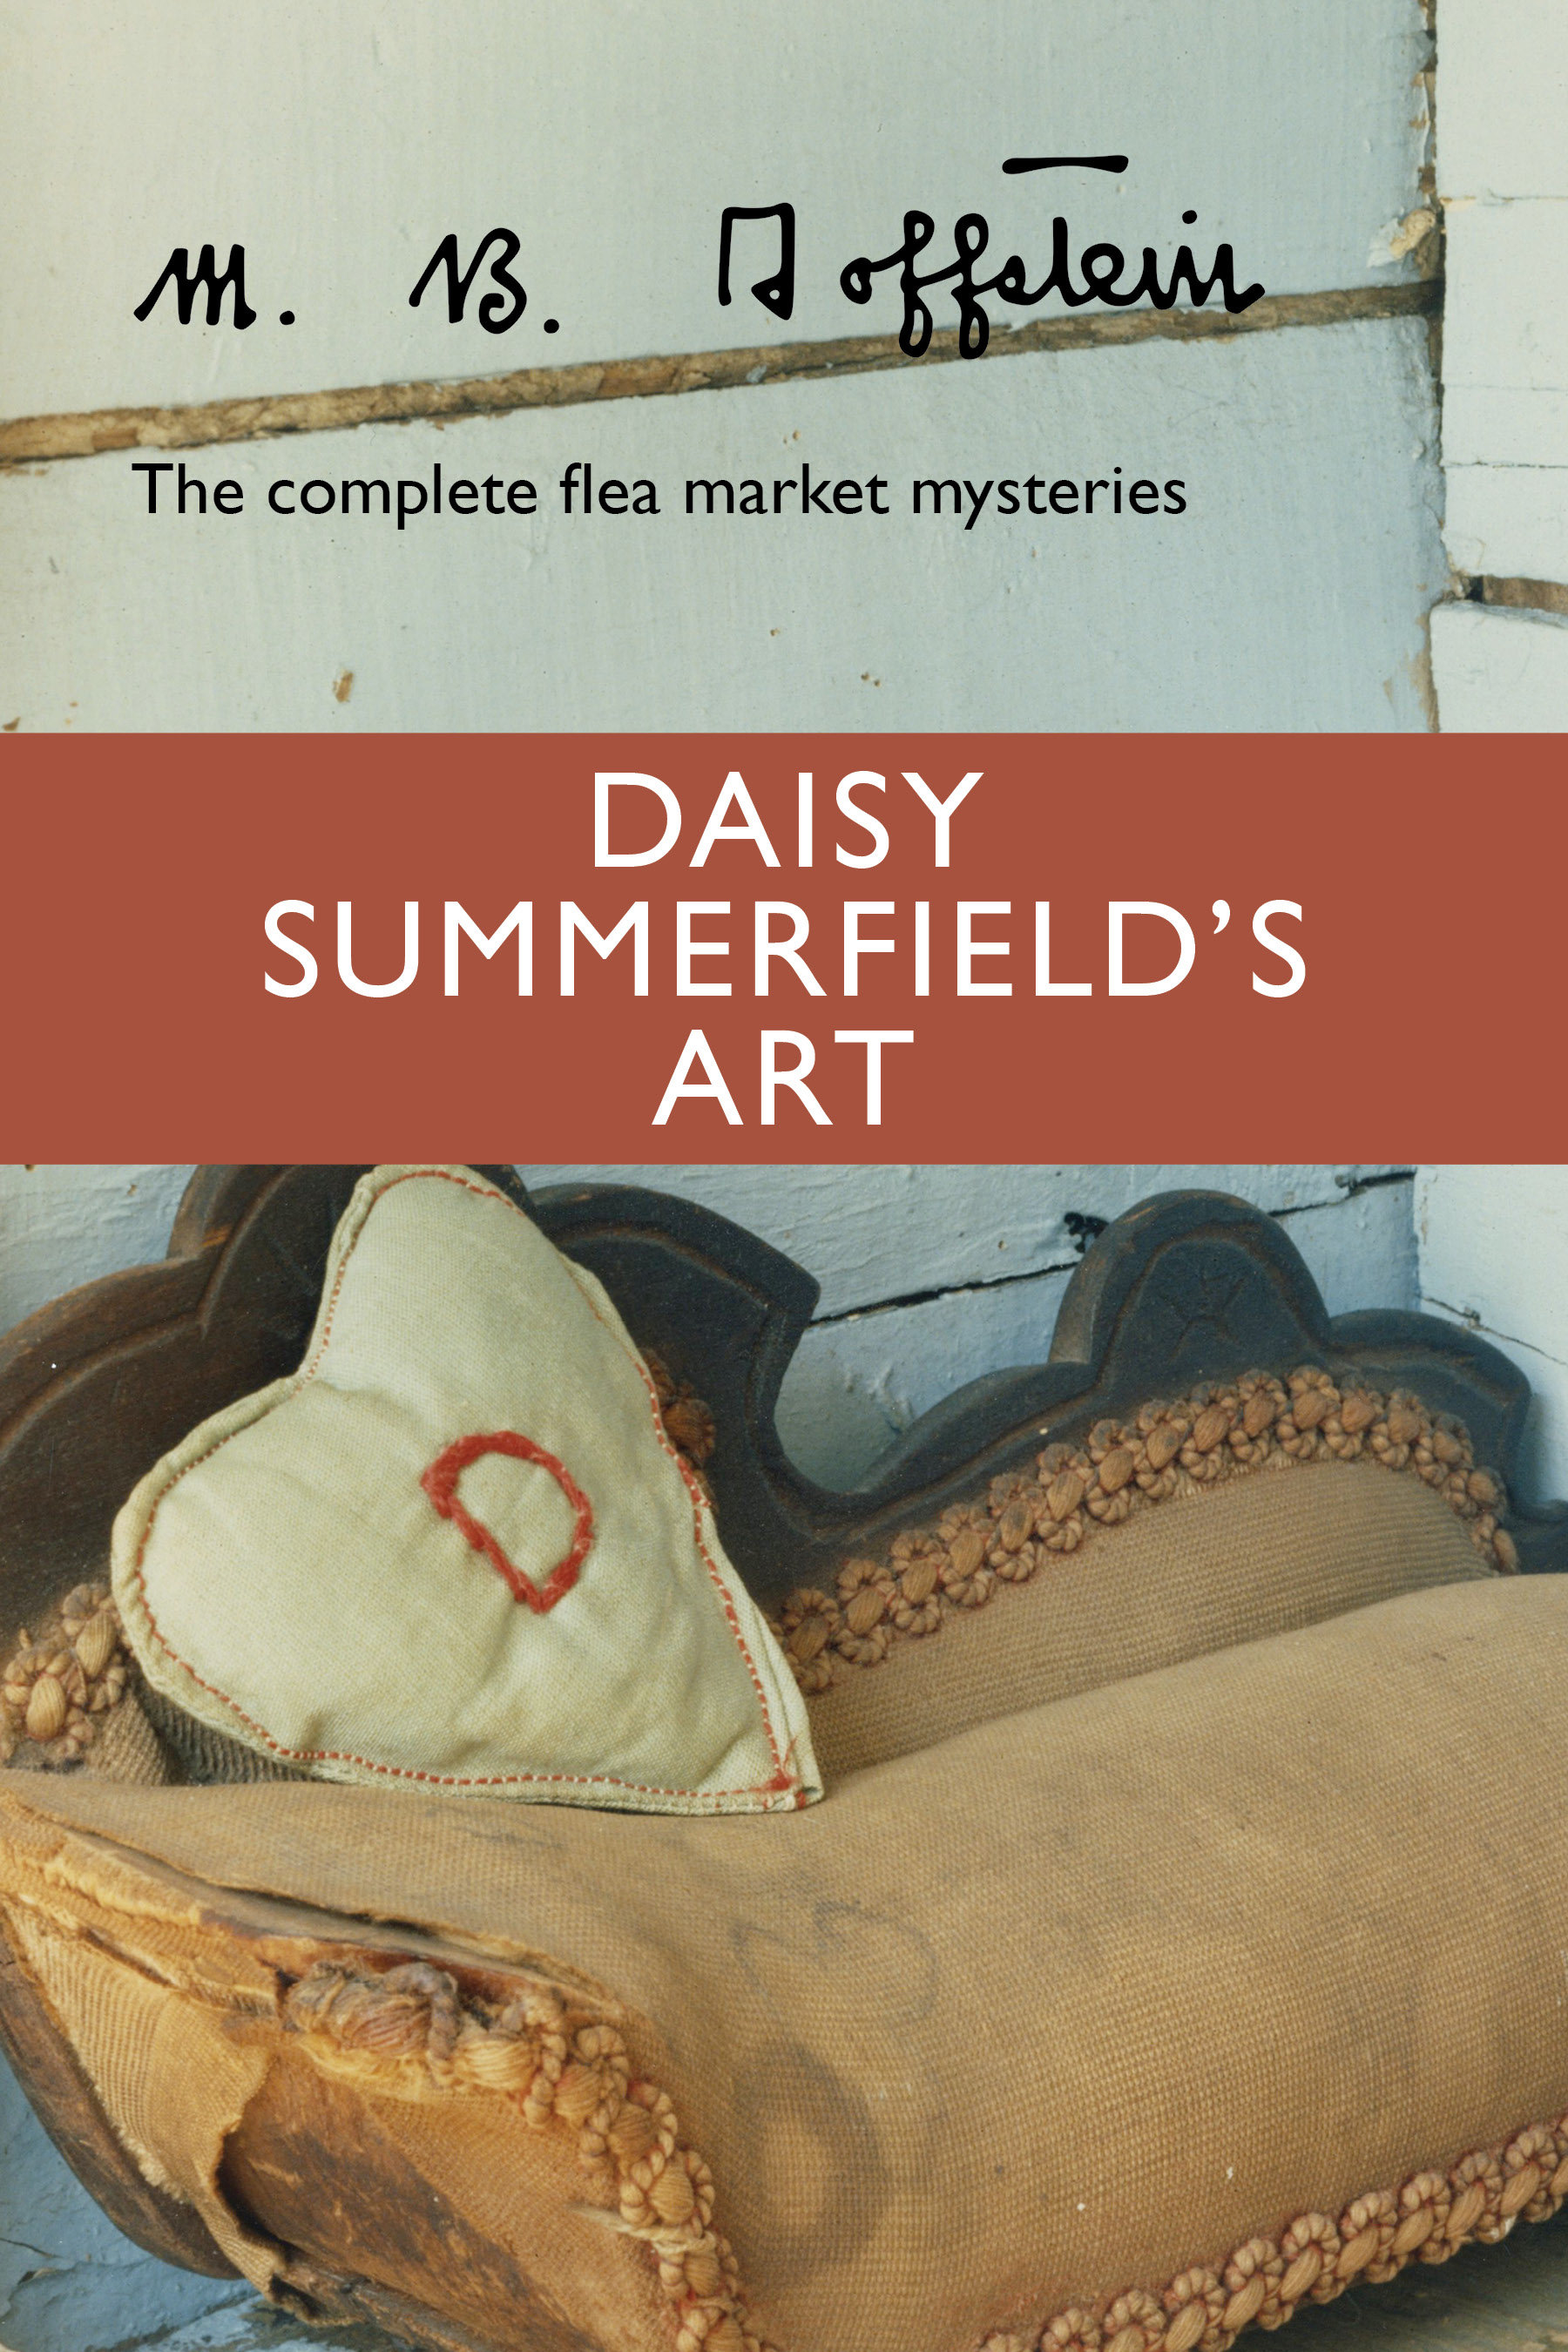 Daisy Summerfield's Art book cover